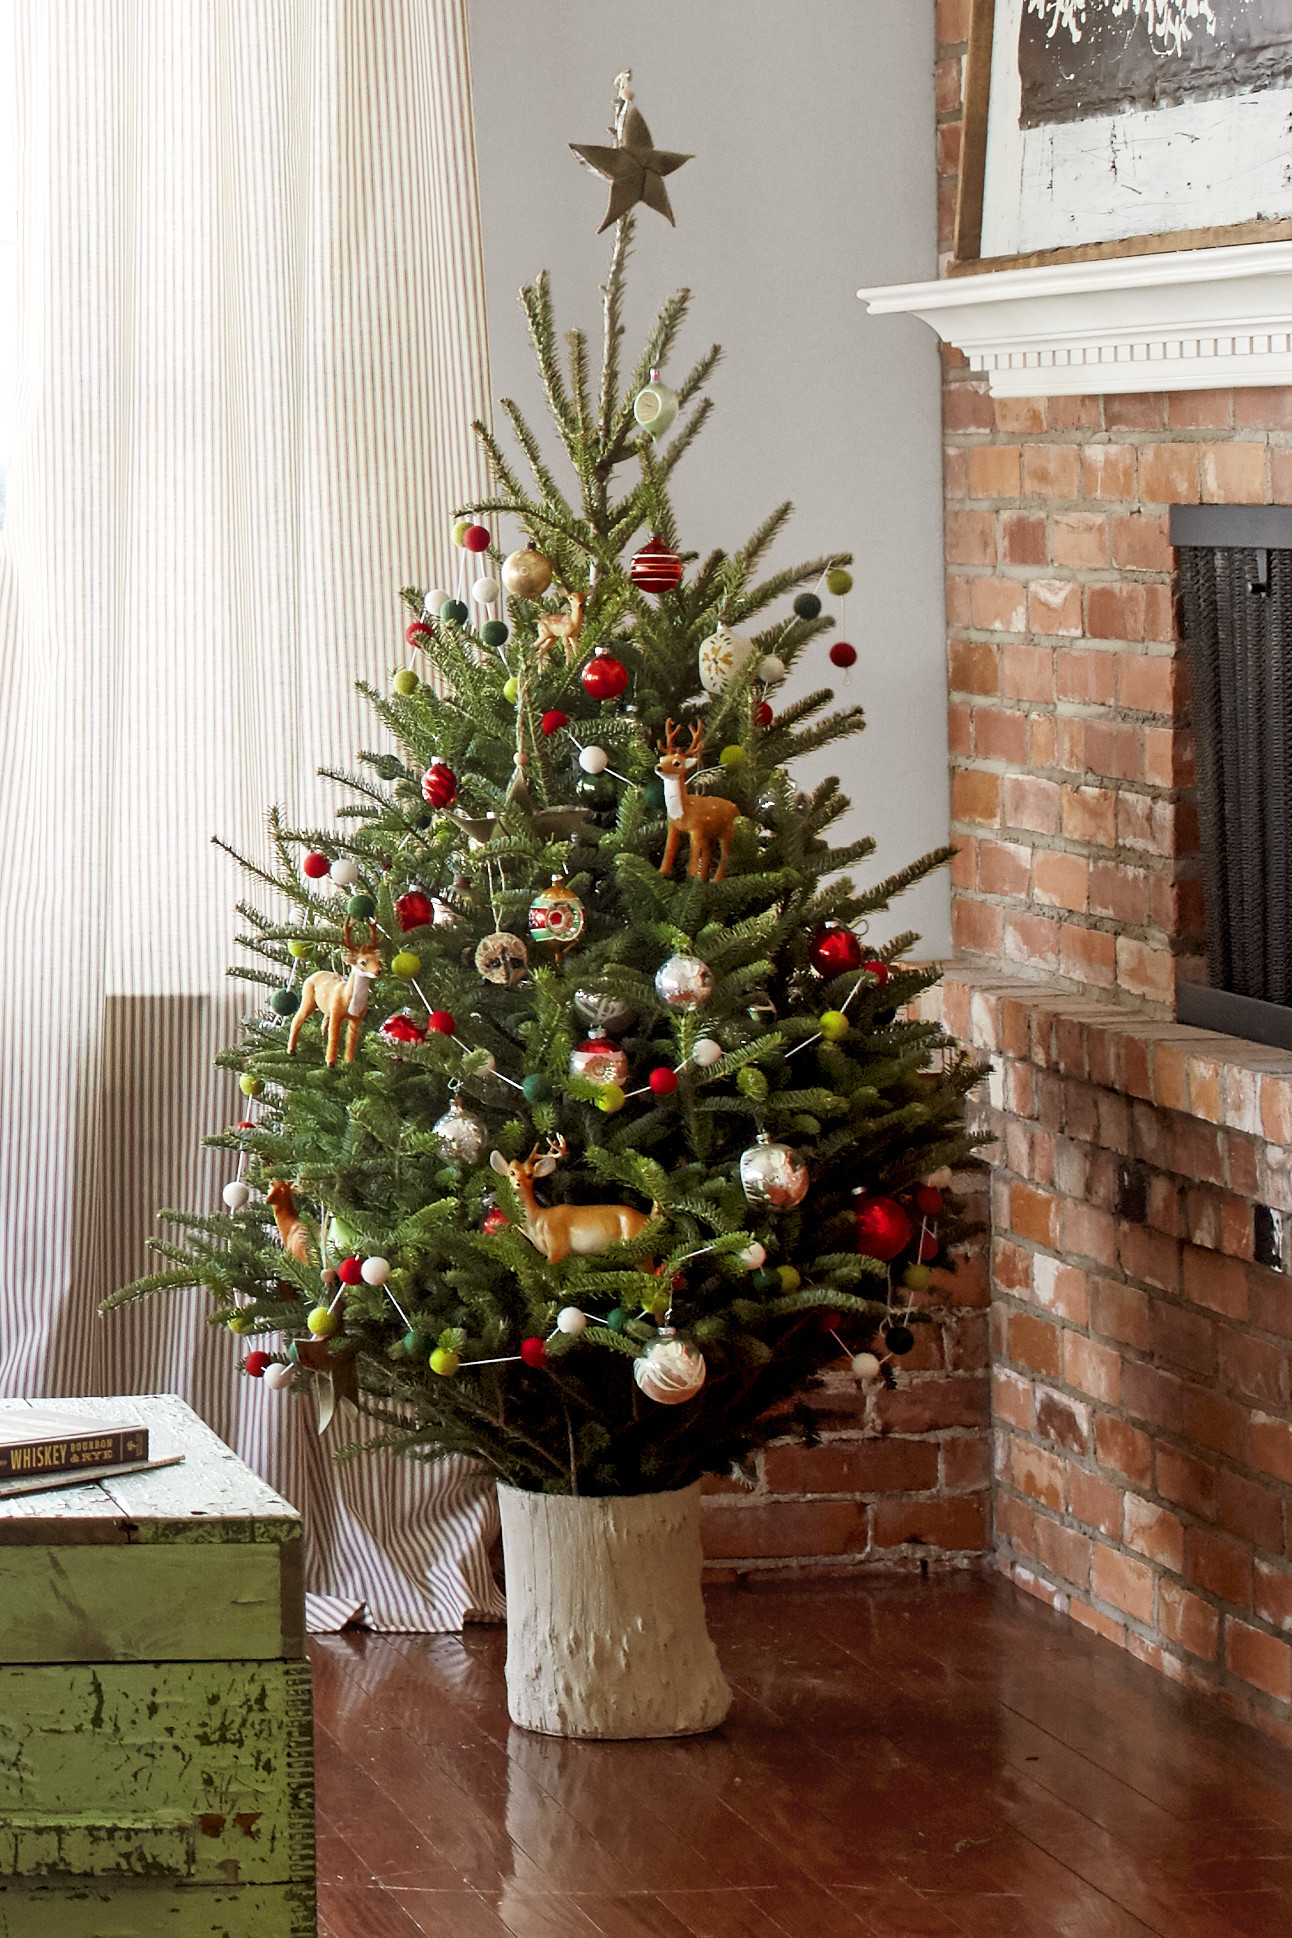 Small Decorated Christmas Trees Beautiful 18 Best Small Christmas Trees Ideas for Decorating Mini Of Charming 48 Models Small Decorated Christmas Trees